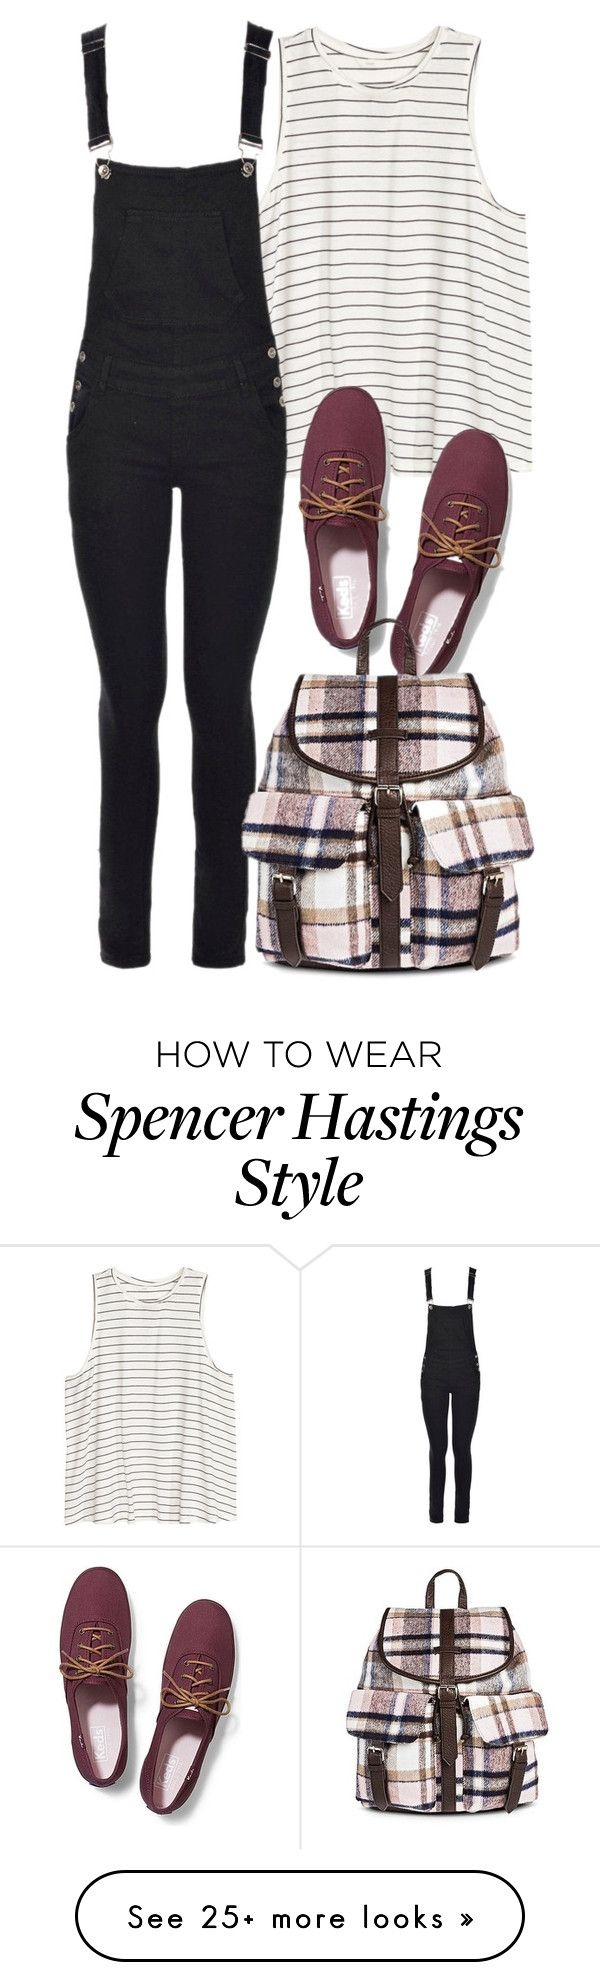 25+ best ideas about Spencer Hastings Fashion on Pinterest | Spencer hastings outfits Pll ...